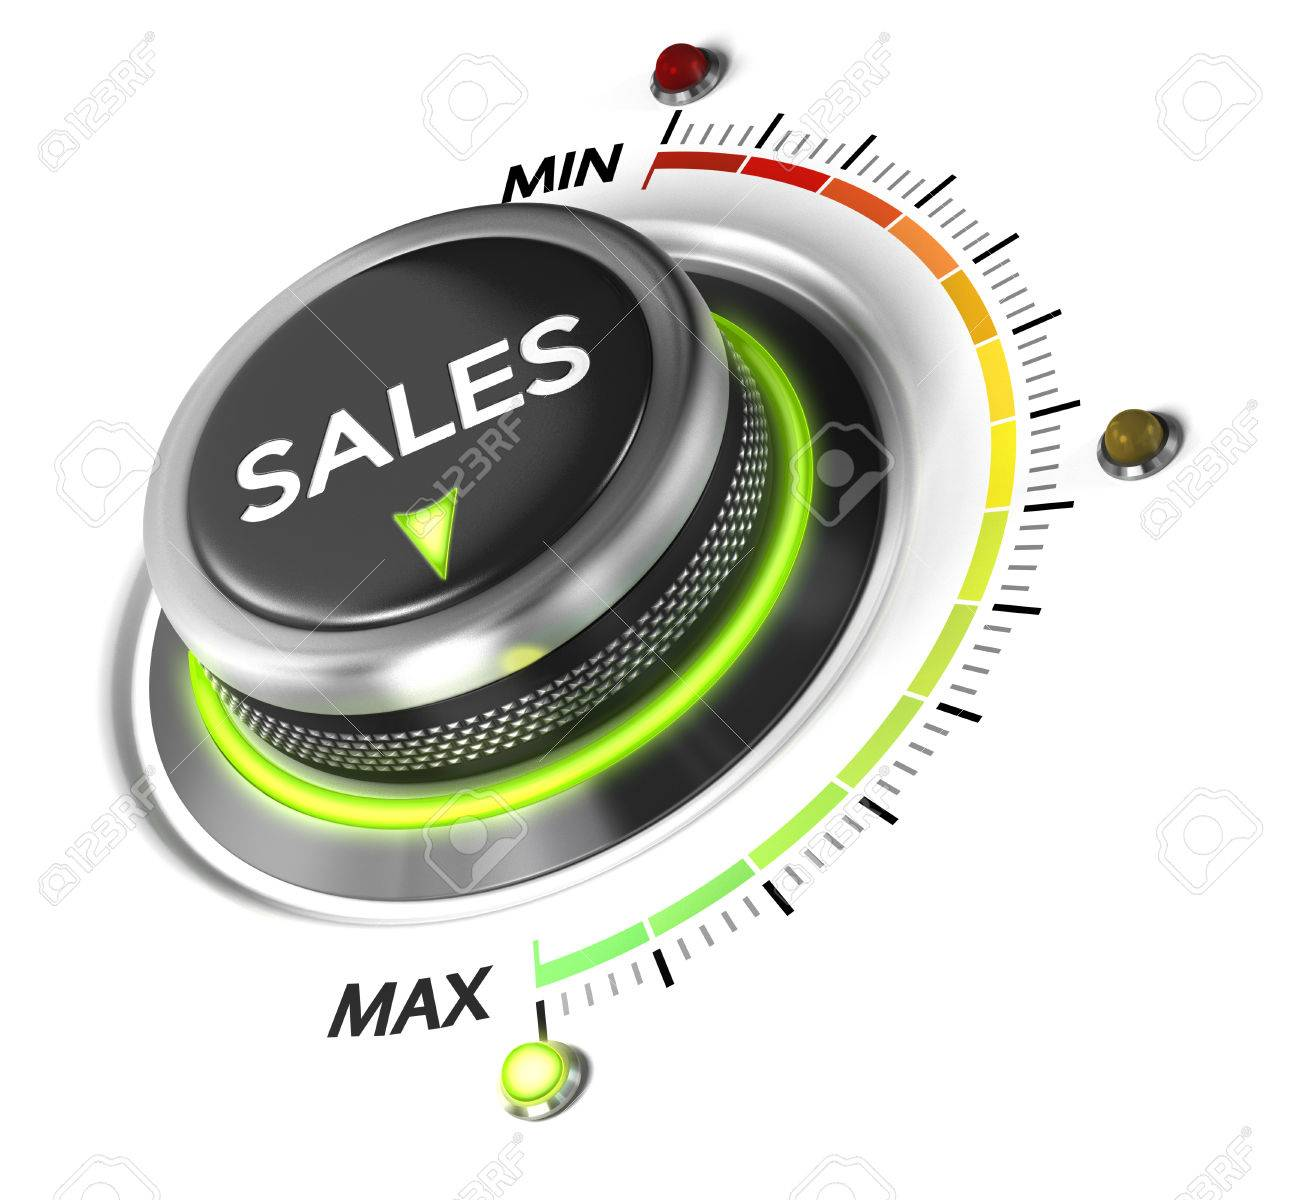 Sales switch button positioned on maximum, white background and blue light. Conceptual image for sales strategy and growth of incomes. Stock Photo - 44689362